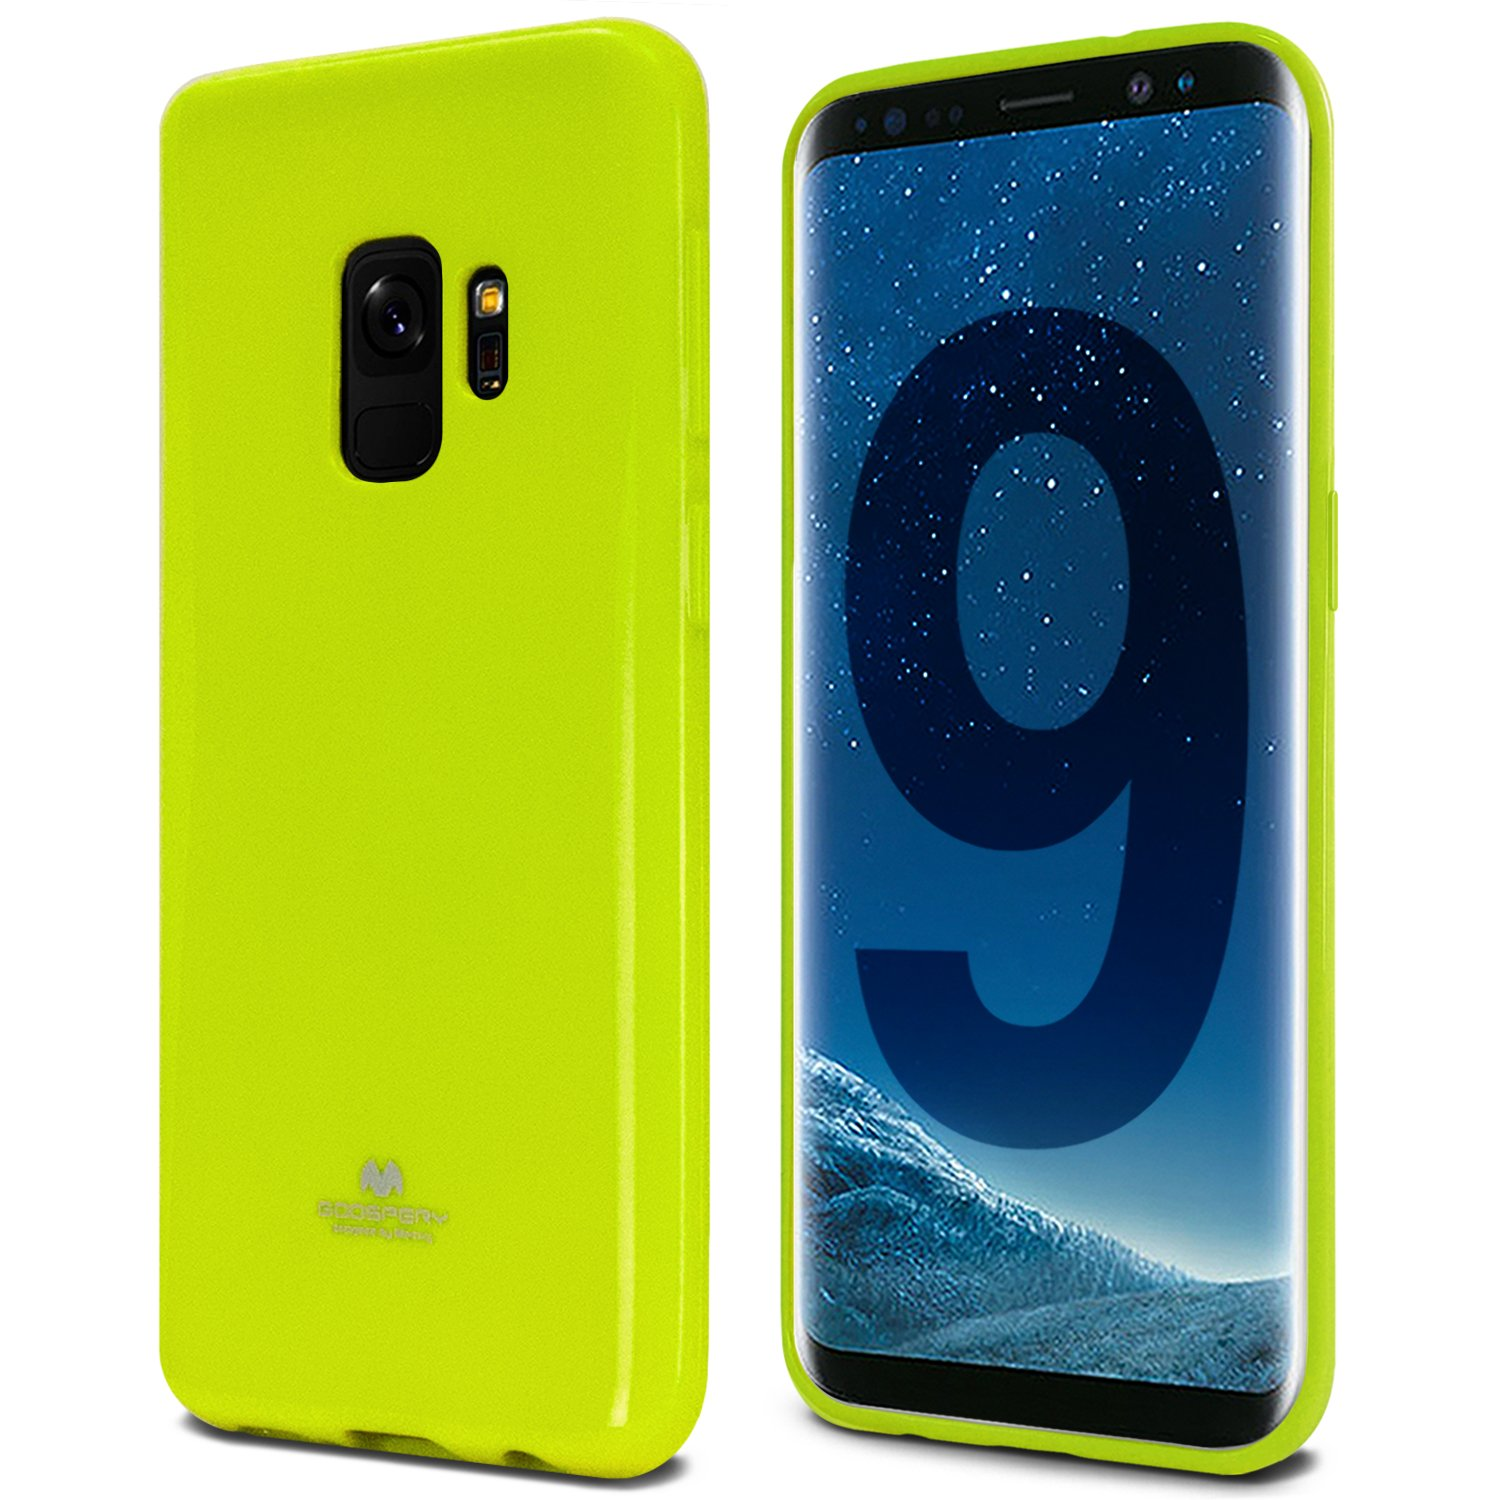 Galaxy S9 Case Thin Slim Goospery Flexible Pearl Samsung New Bumper X Black Jelly Rubber Tpu Lightweight Cover Impact Resistant For